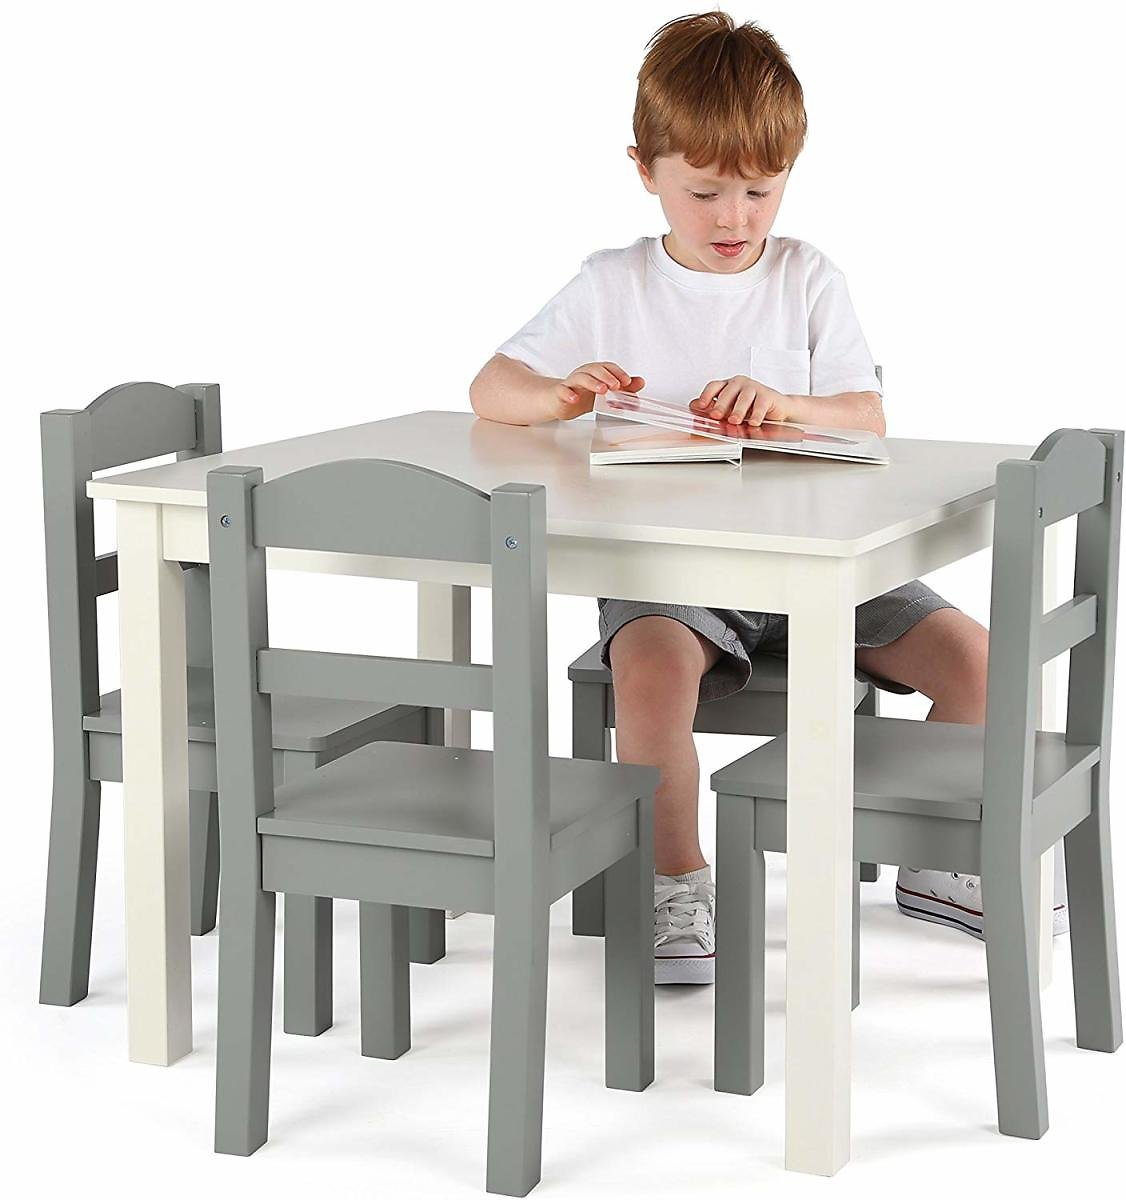 Tot Tutors TC534 Springfield Collection Kids Wood Table & 4 Chair Set, White/Grey